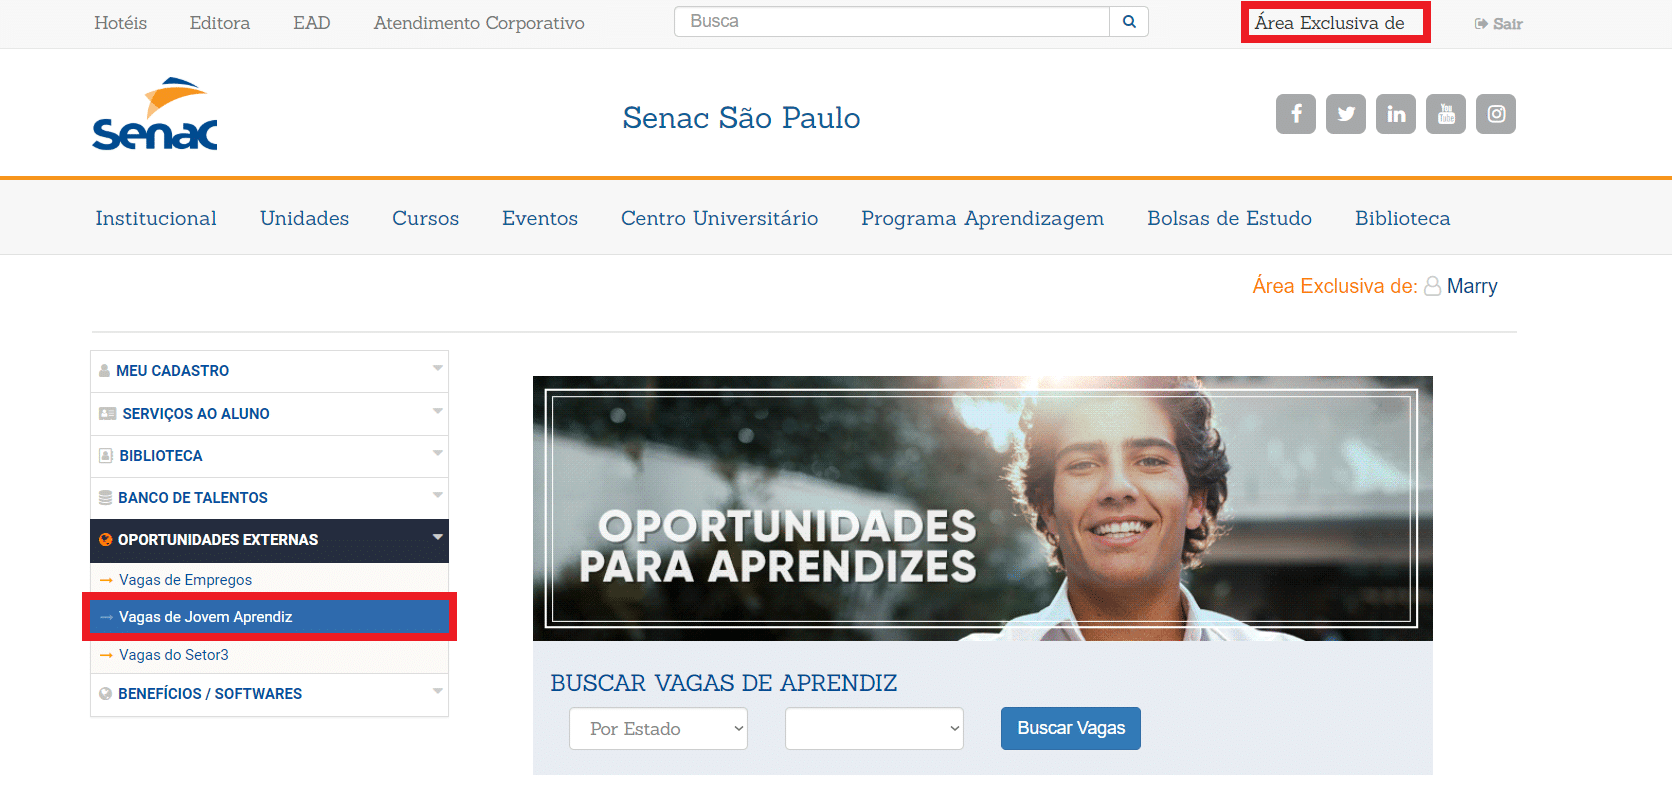 jovem aprendiz senac - print screen da pagina exclusiva